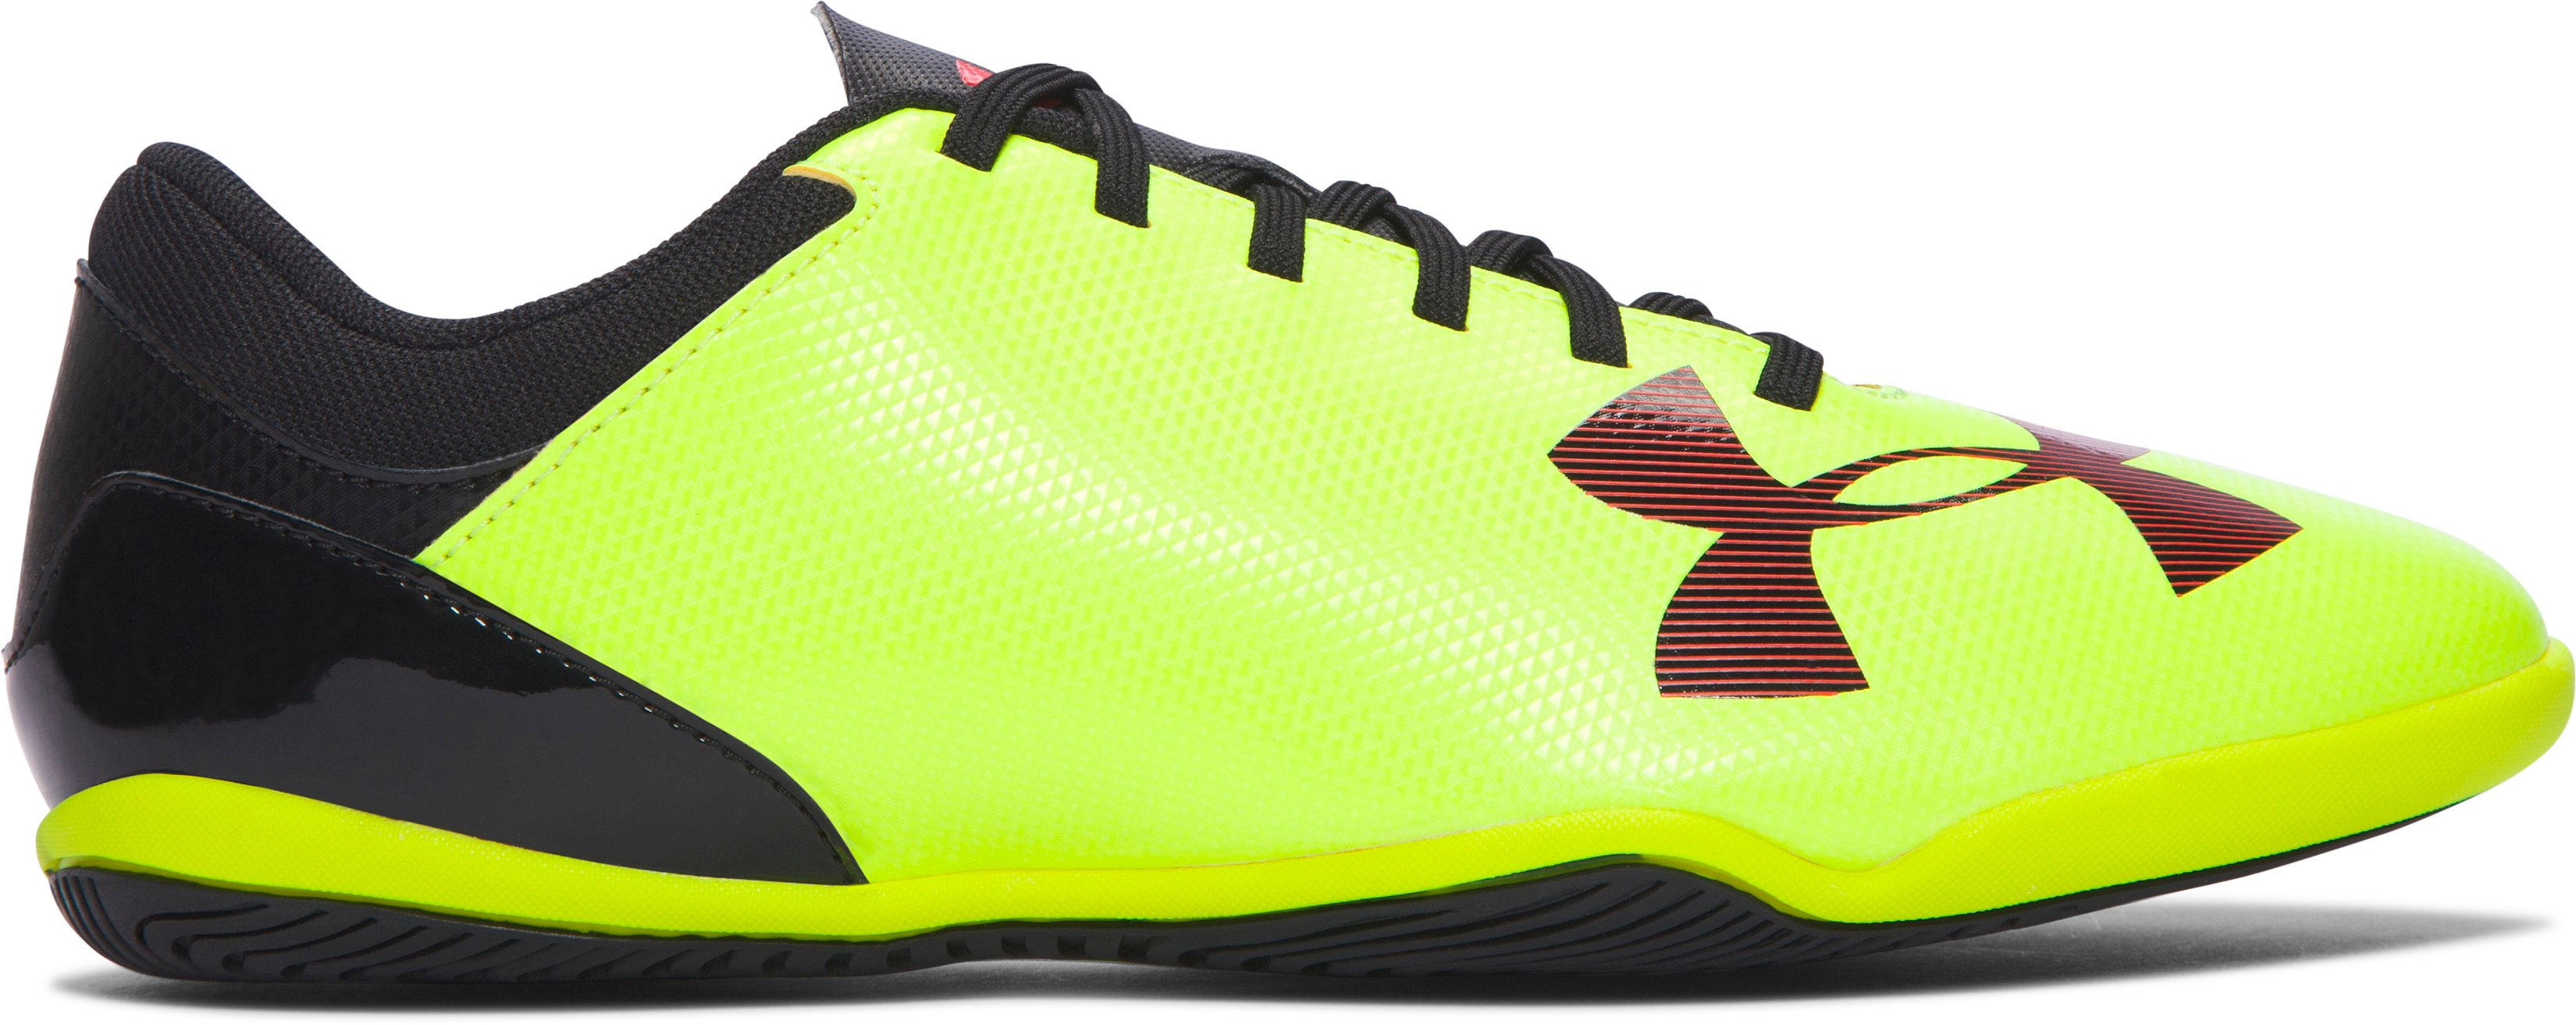 Kids' UA Spotlight ID Jr. Soccer Shoes, High-Vis Yellow